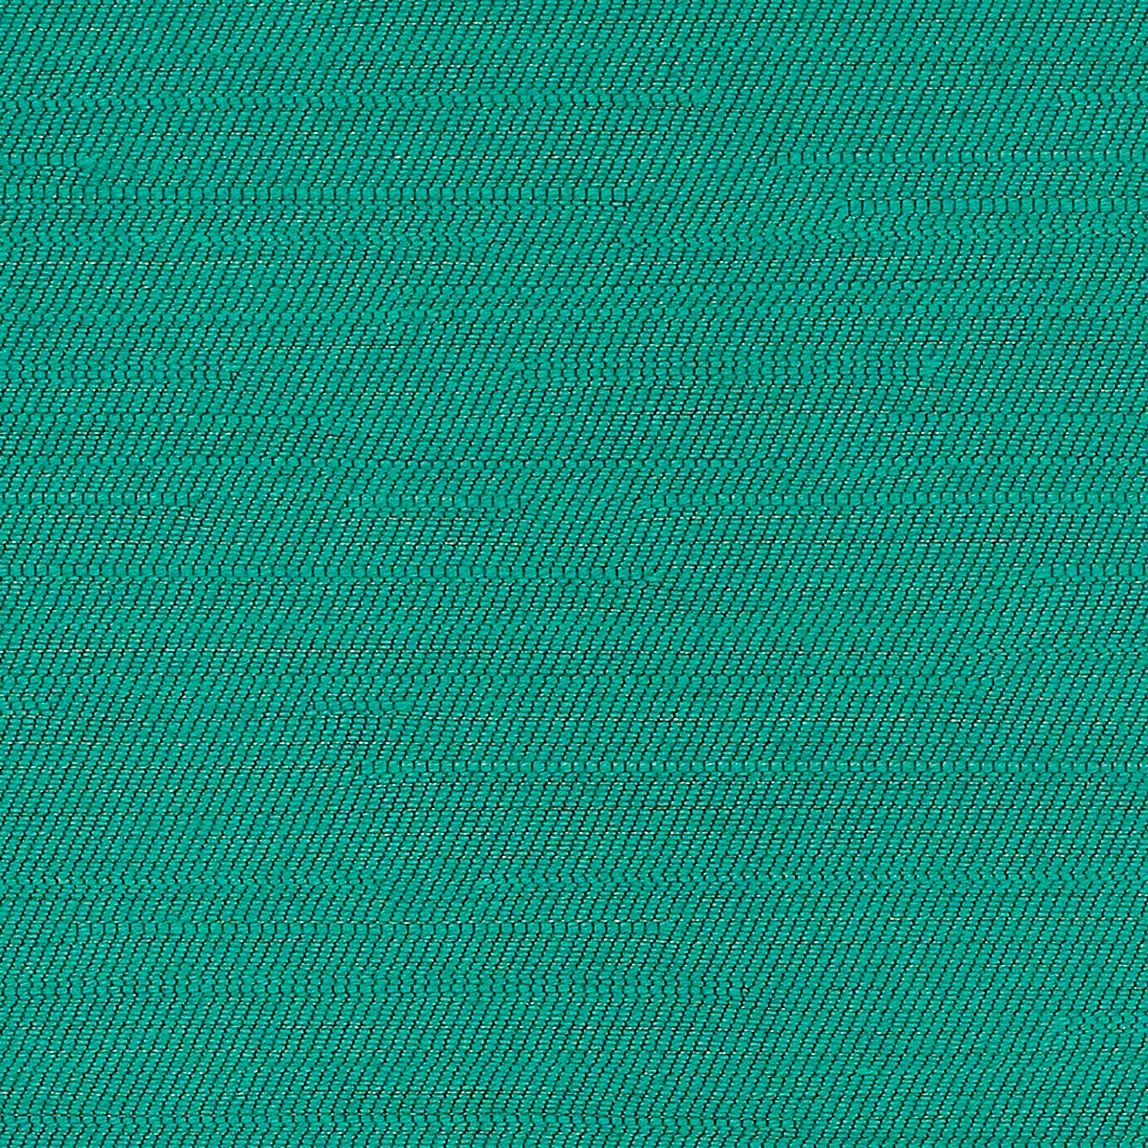 Weaving Palettes Teal Swatch